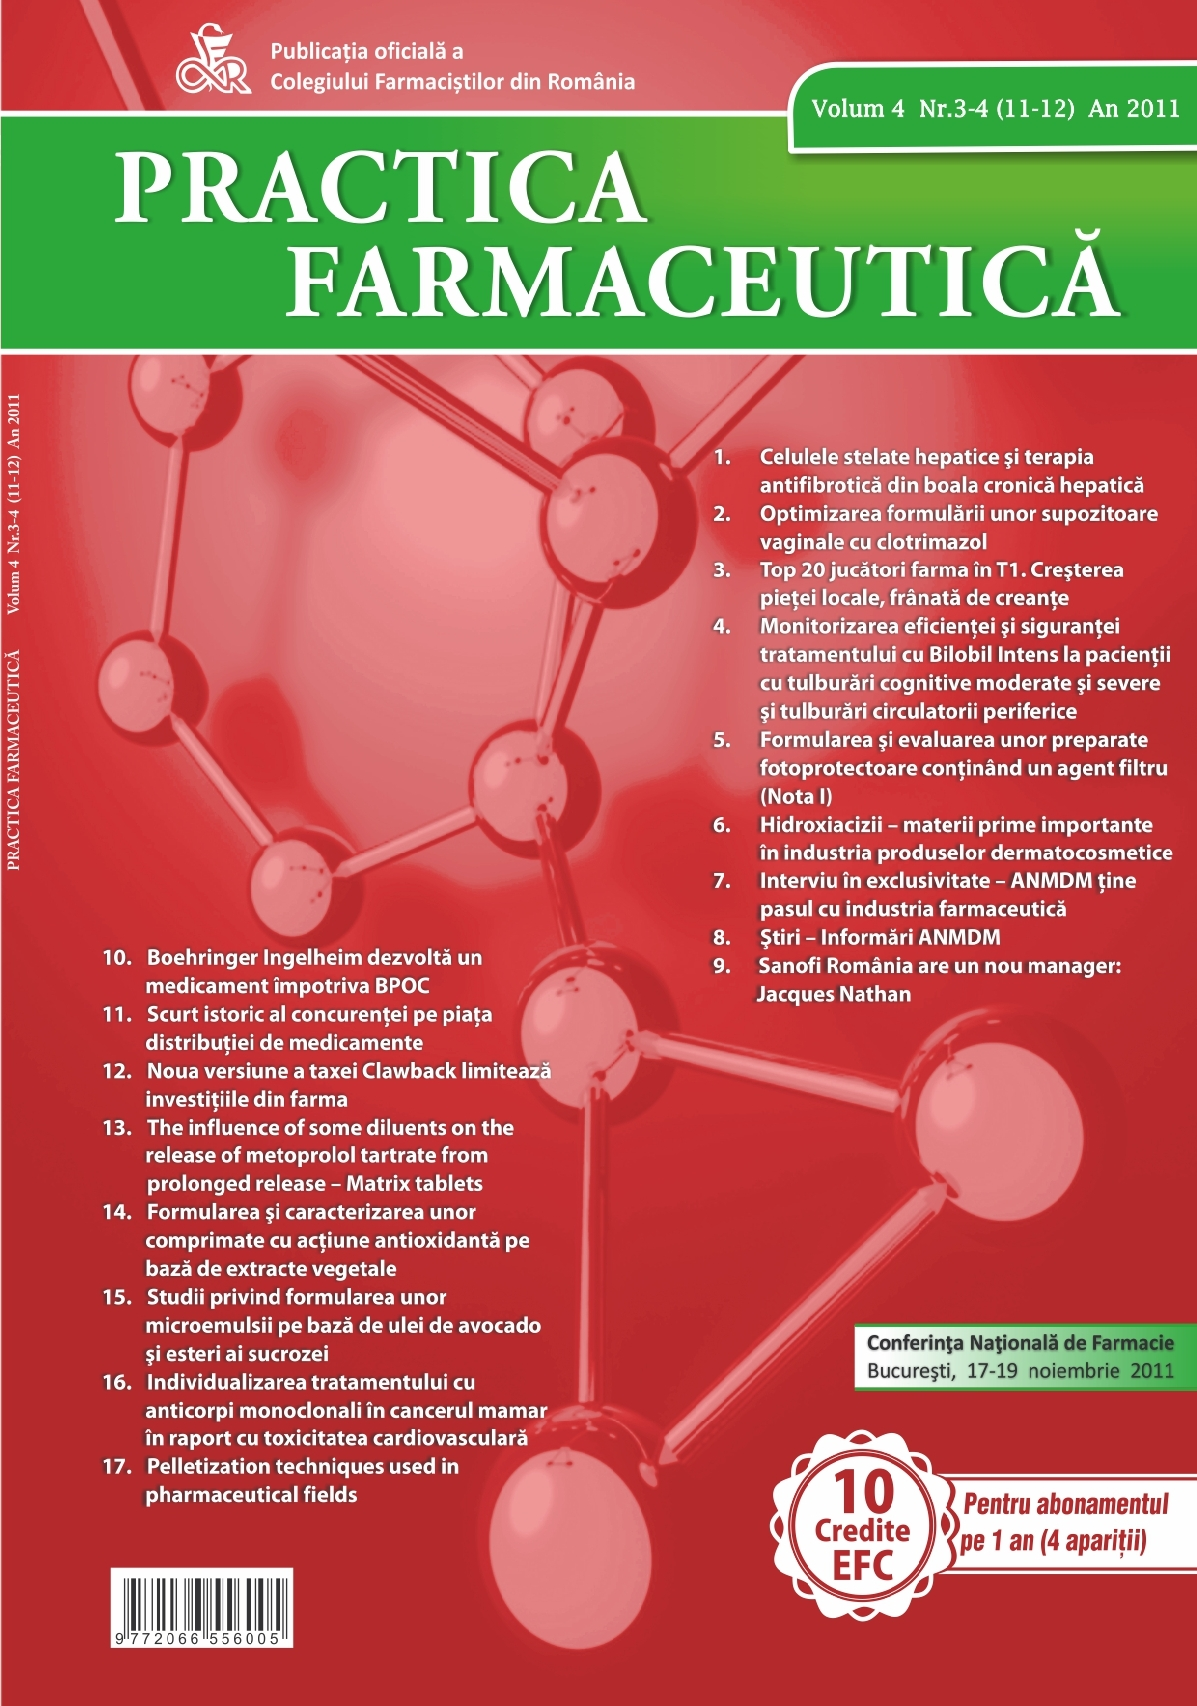 Revista Practica Farmaceutica, Vol. 4, Nr. 3-4 (11-12), 2011